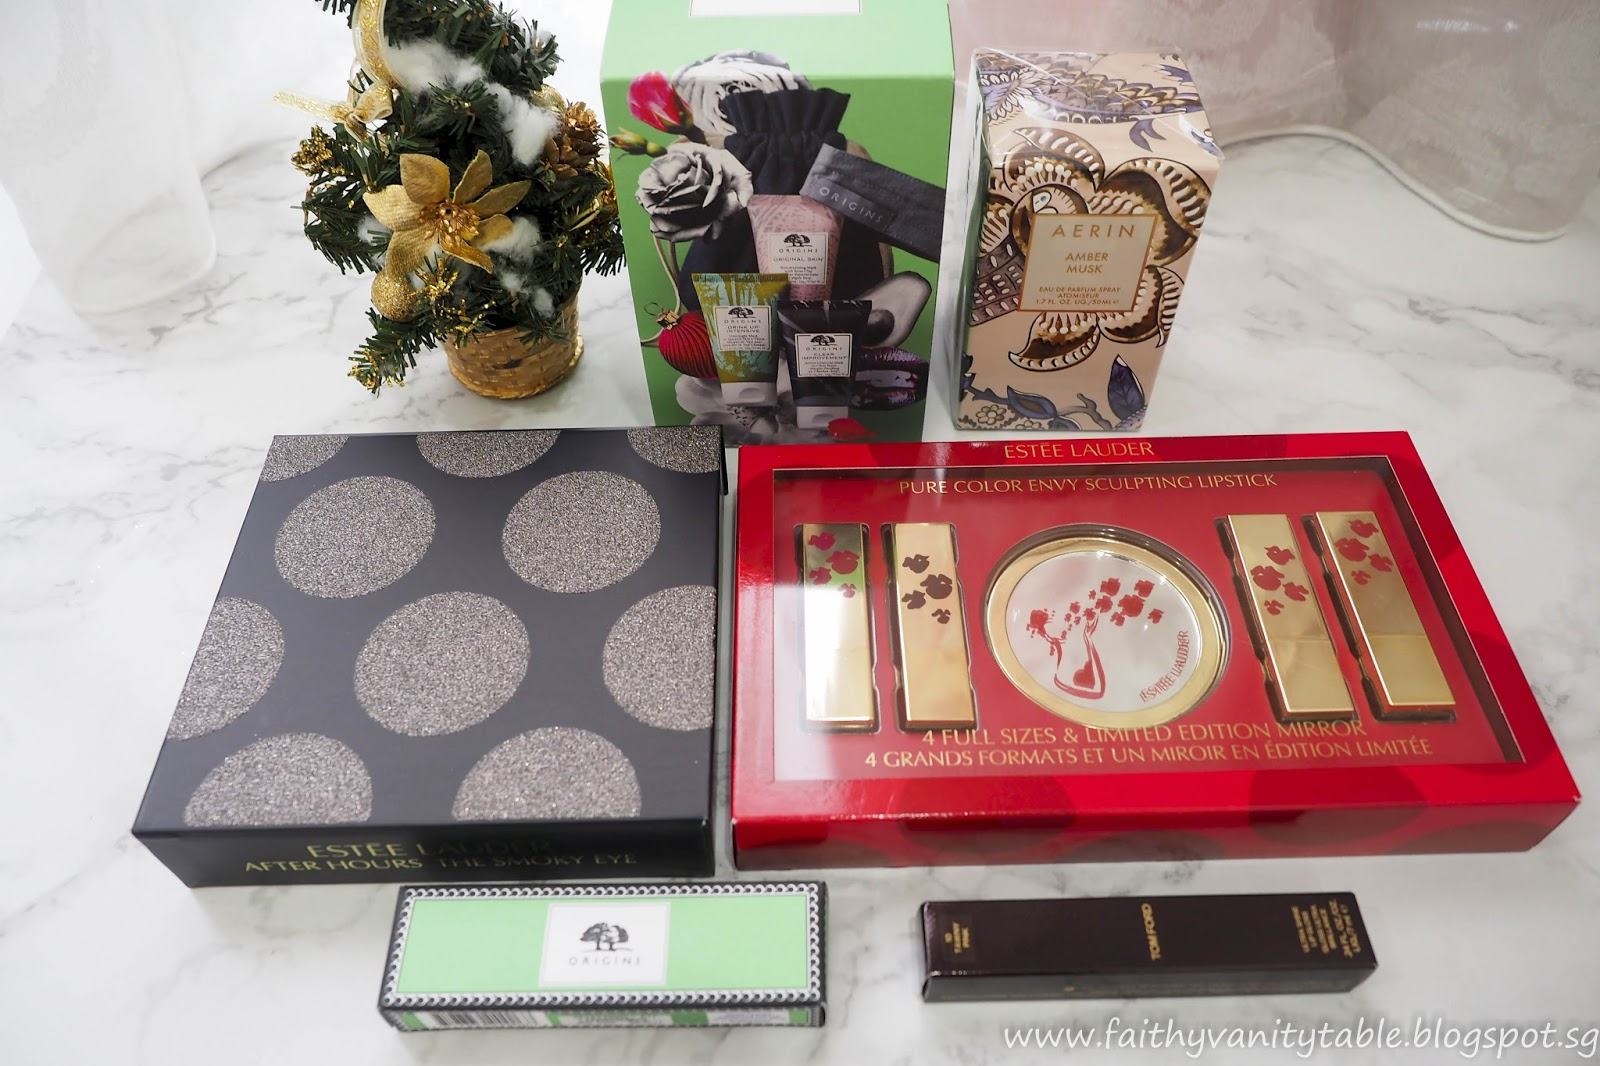 ... party of Estée Lauder Group of Companies in Singapore. There was where I got the above sneak peek of the year 2017u0027s Christmas gift collection. & Singapore Beauty Travel and Lifestyle Blog: Estée Lauder Christmas ...